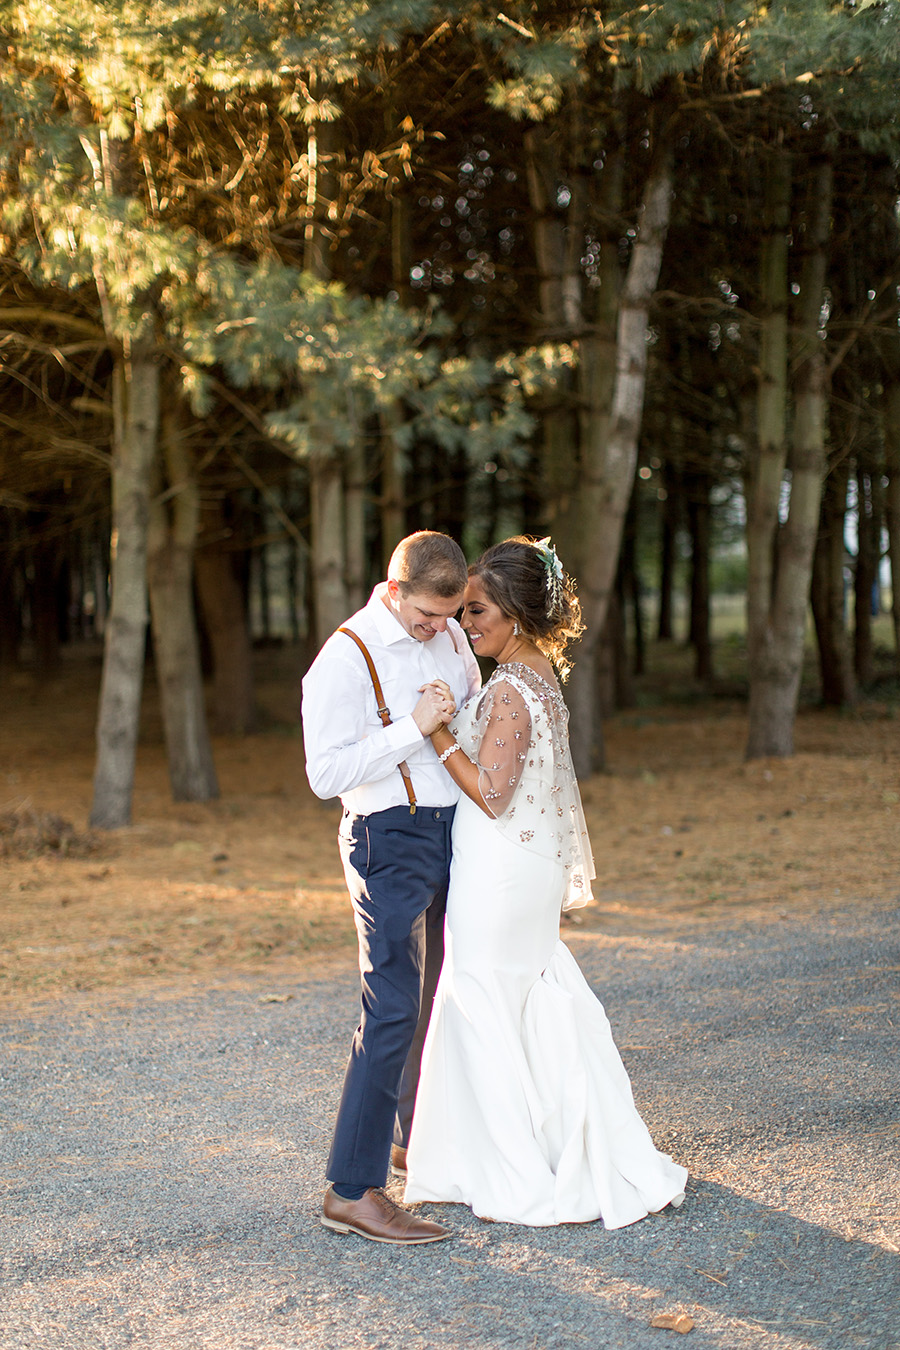 Sunset portraits with the bride and groom